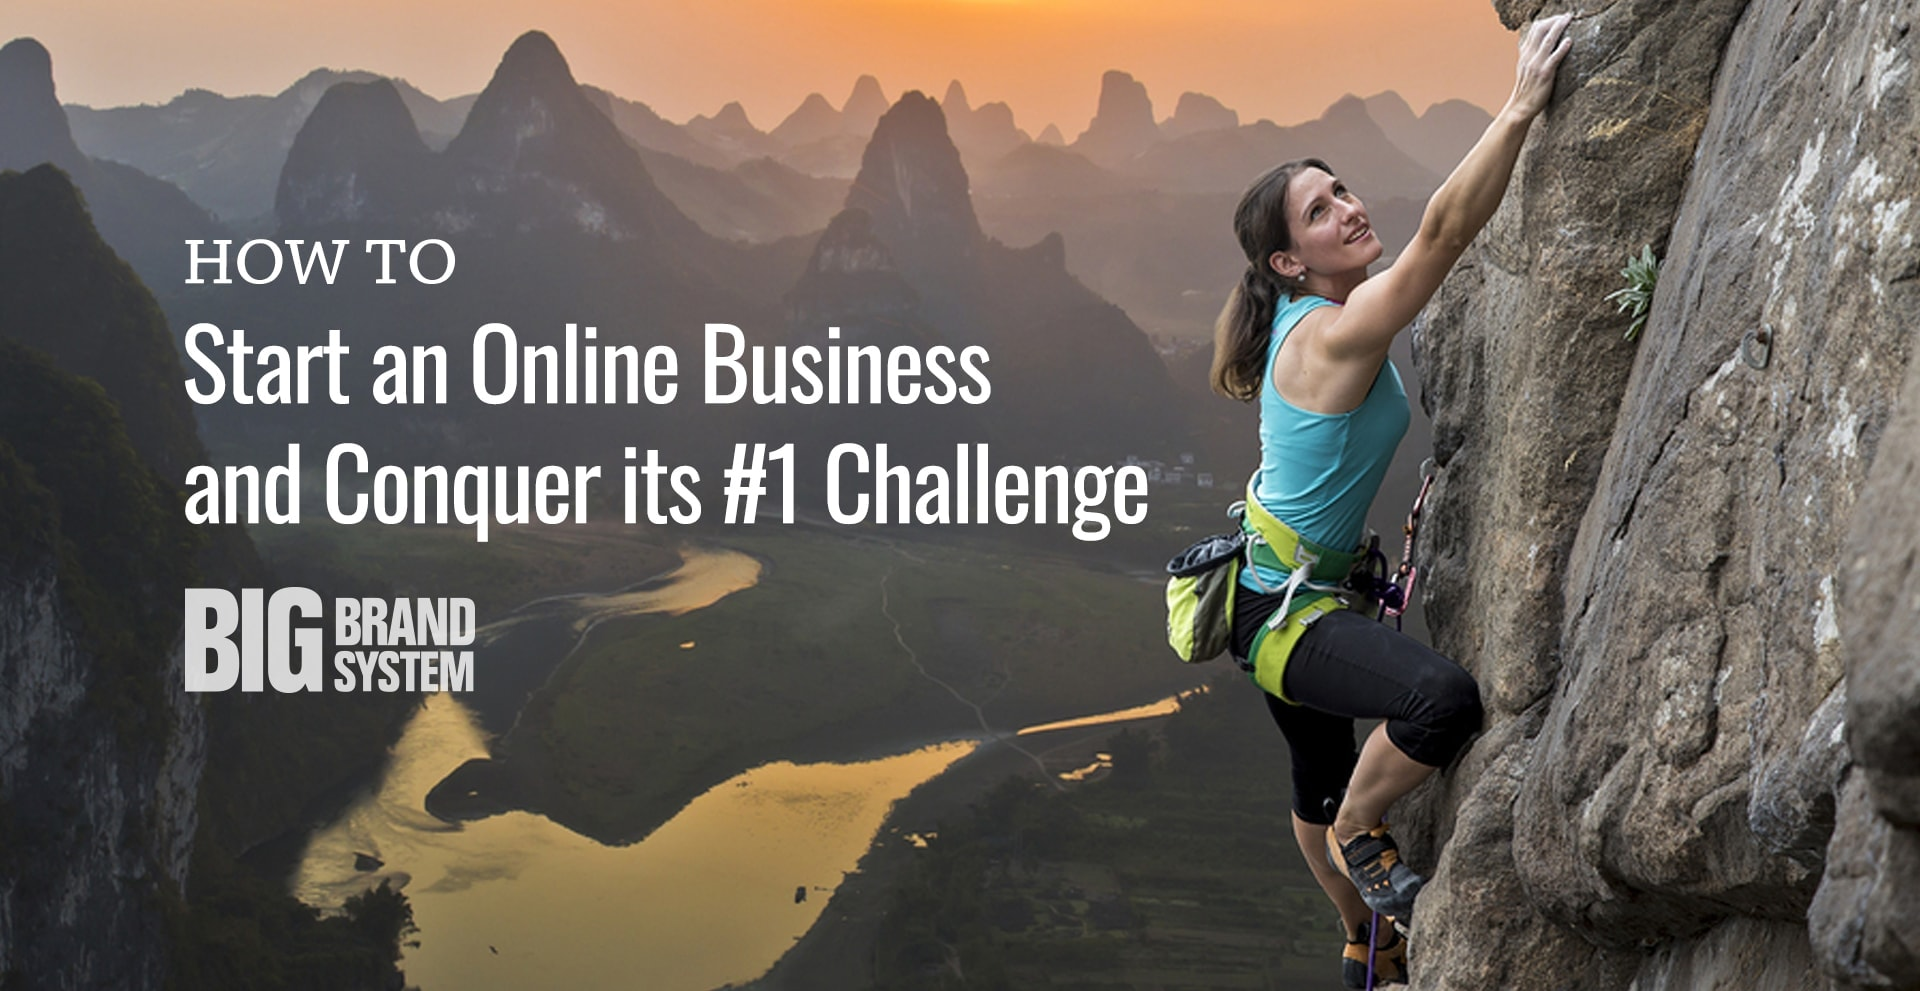 Discover how to start an online business with the Plan & Grow BIG approach — it will help you conquer the #1 challenge online business owners face!